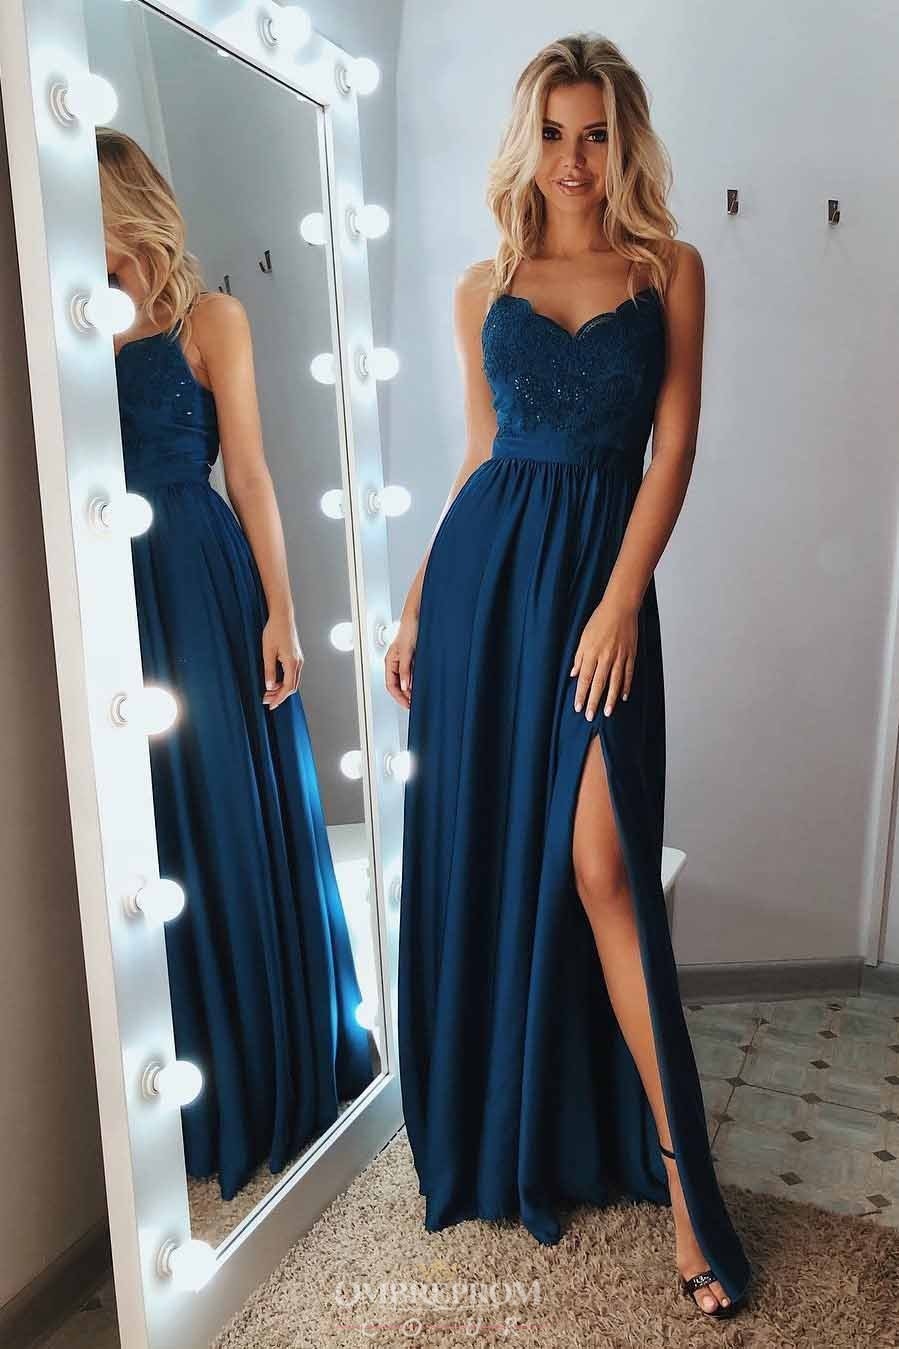 Buy A Line Lace Appliques Blue Spaghetti Long Prom Dresses with Slit OP758 Buy A Line Lace Appliques Blue Spaghetti Long Prom Dresses with Slit OP758 just waiting for you to claim it. We are here to help you find something perfectly and utterly unique prom dress to a military ball, formal party, graduation or wedding. #promdresses